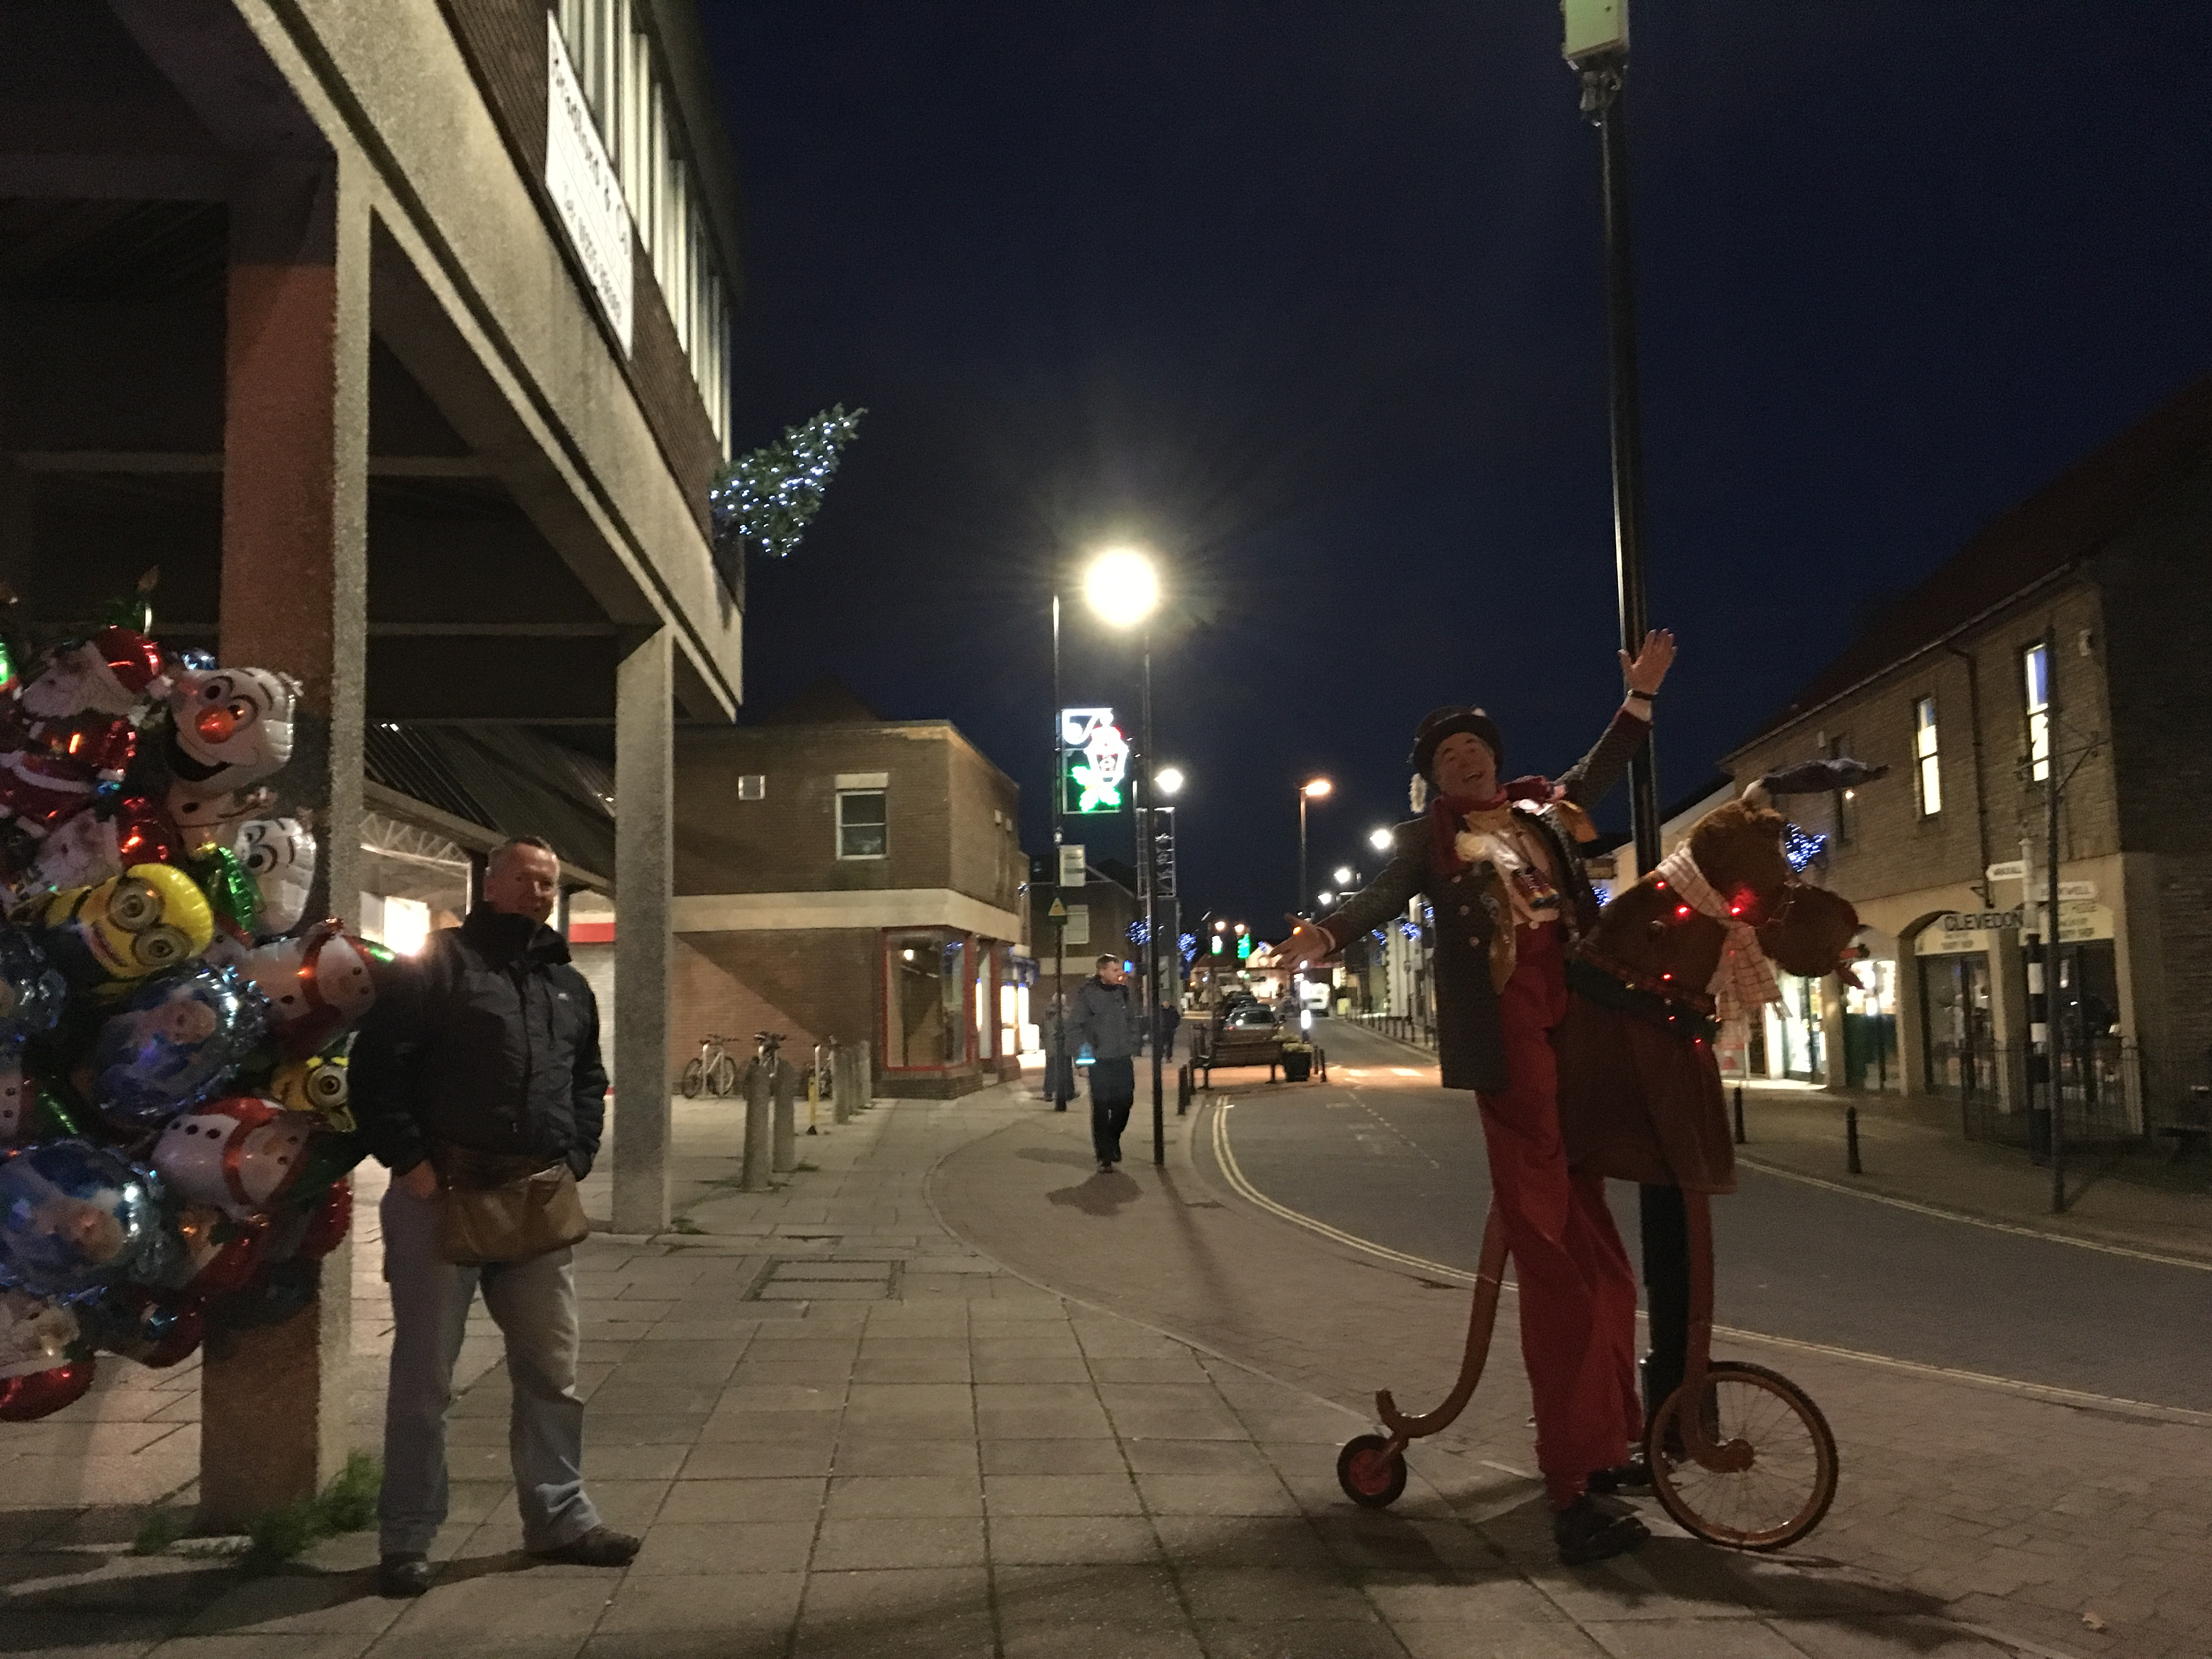 Nailsea Christmas lights 2015